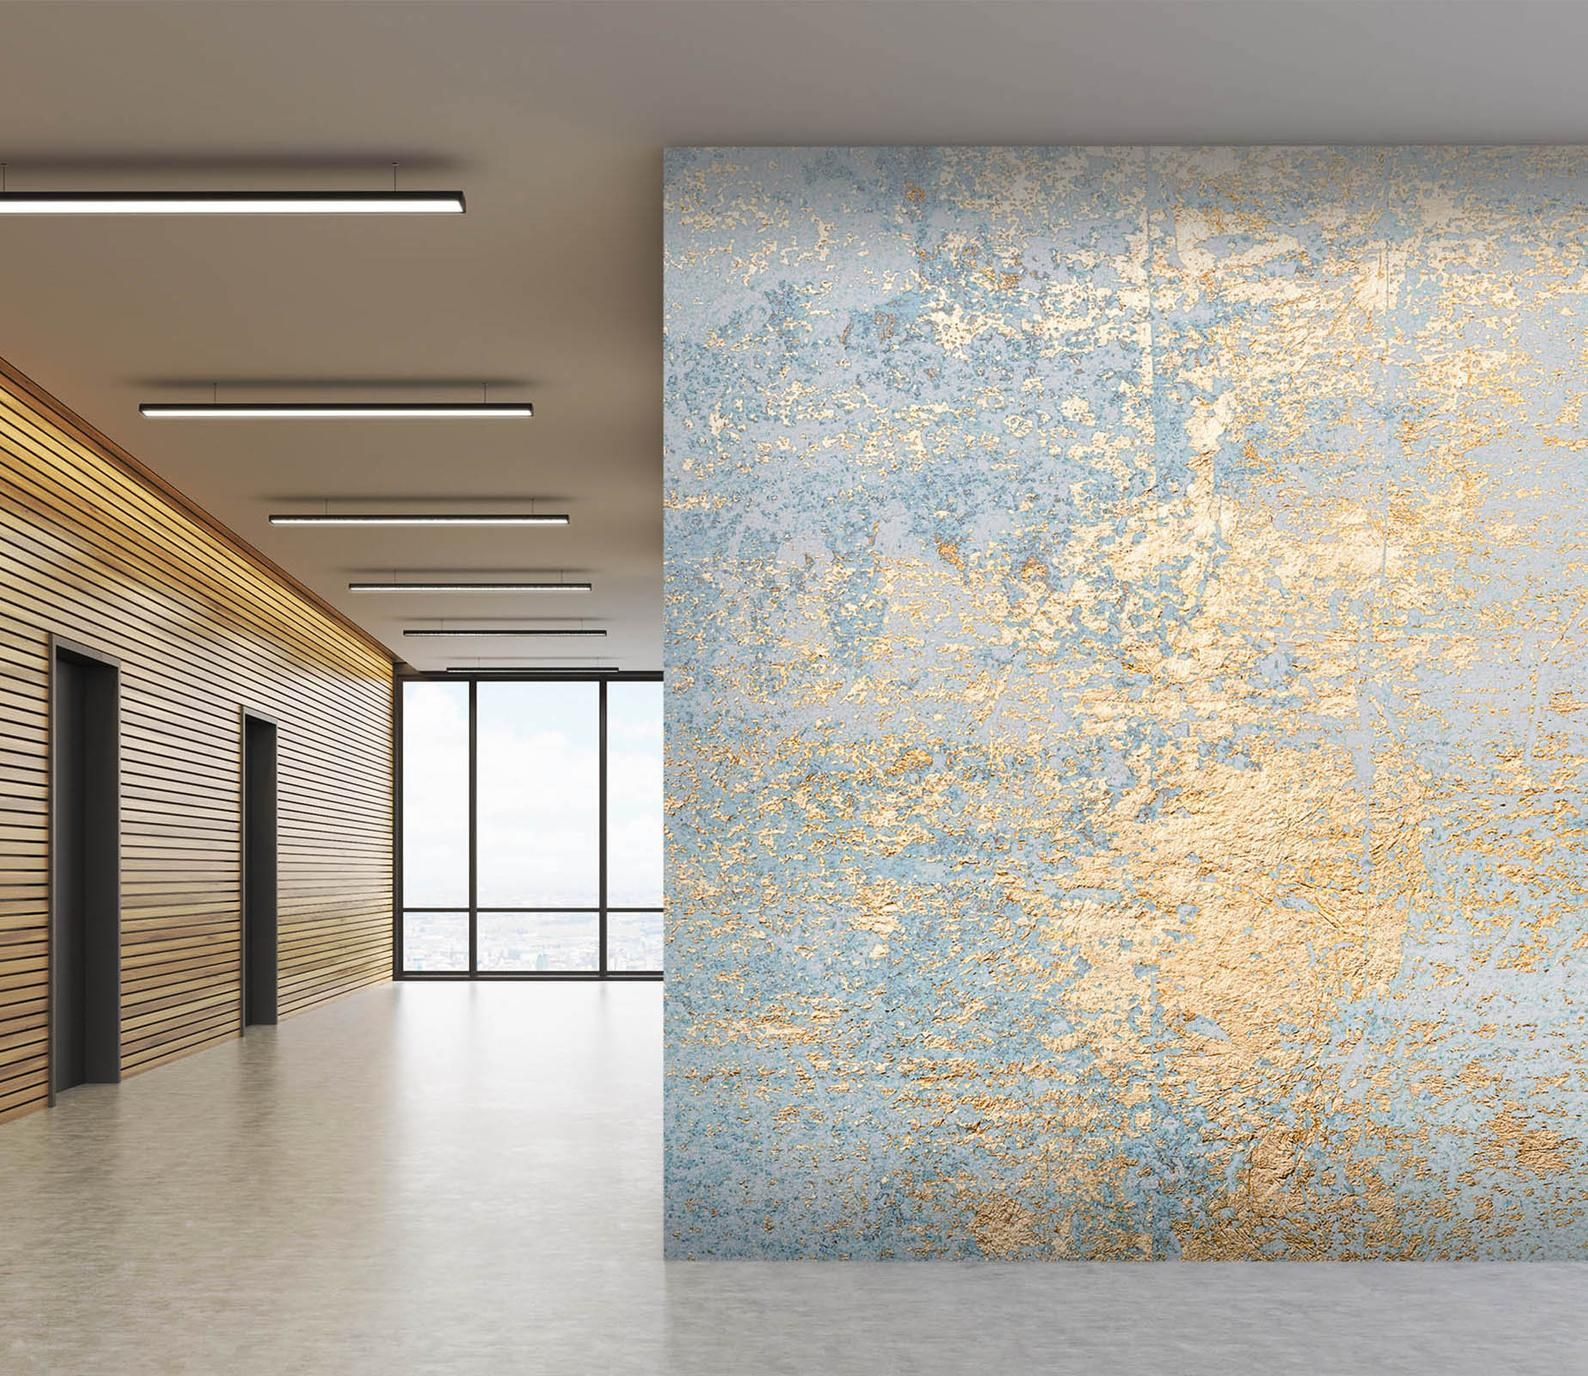 Golden Wall 2974 Wallpaper Mural Self Adhesive Peel And Stick Wall Sticker Wall Decoration Design Removable In 2021 Tiles Texture Painting Textured Walls 3d Wall Murals